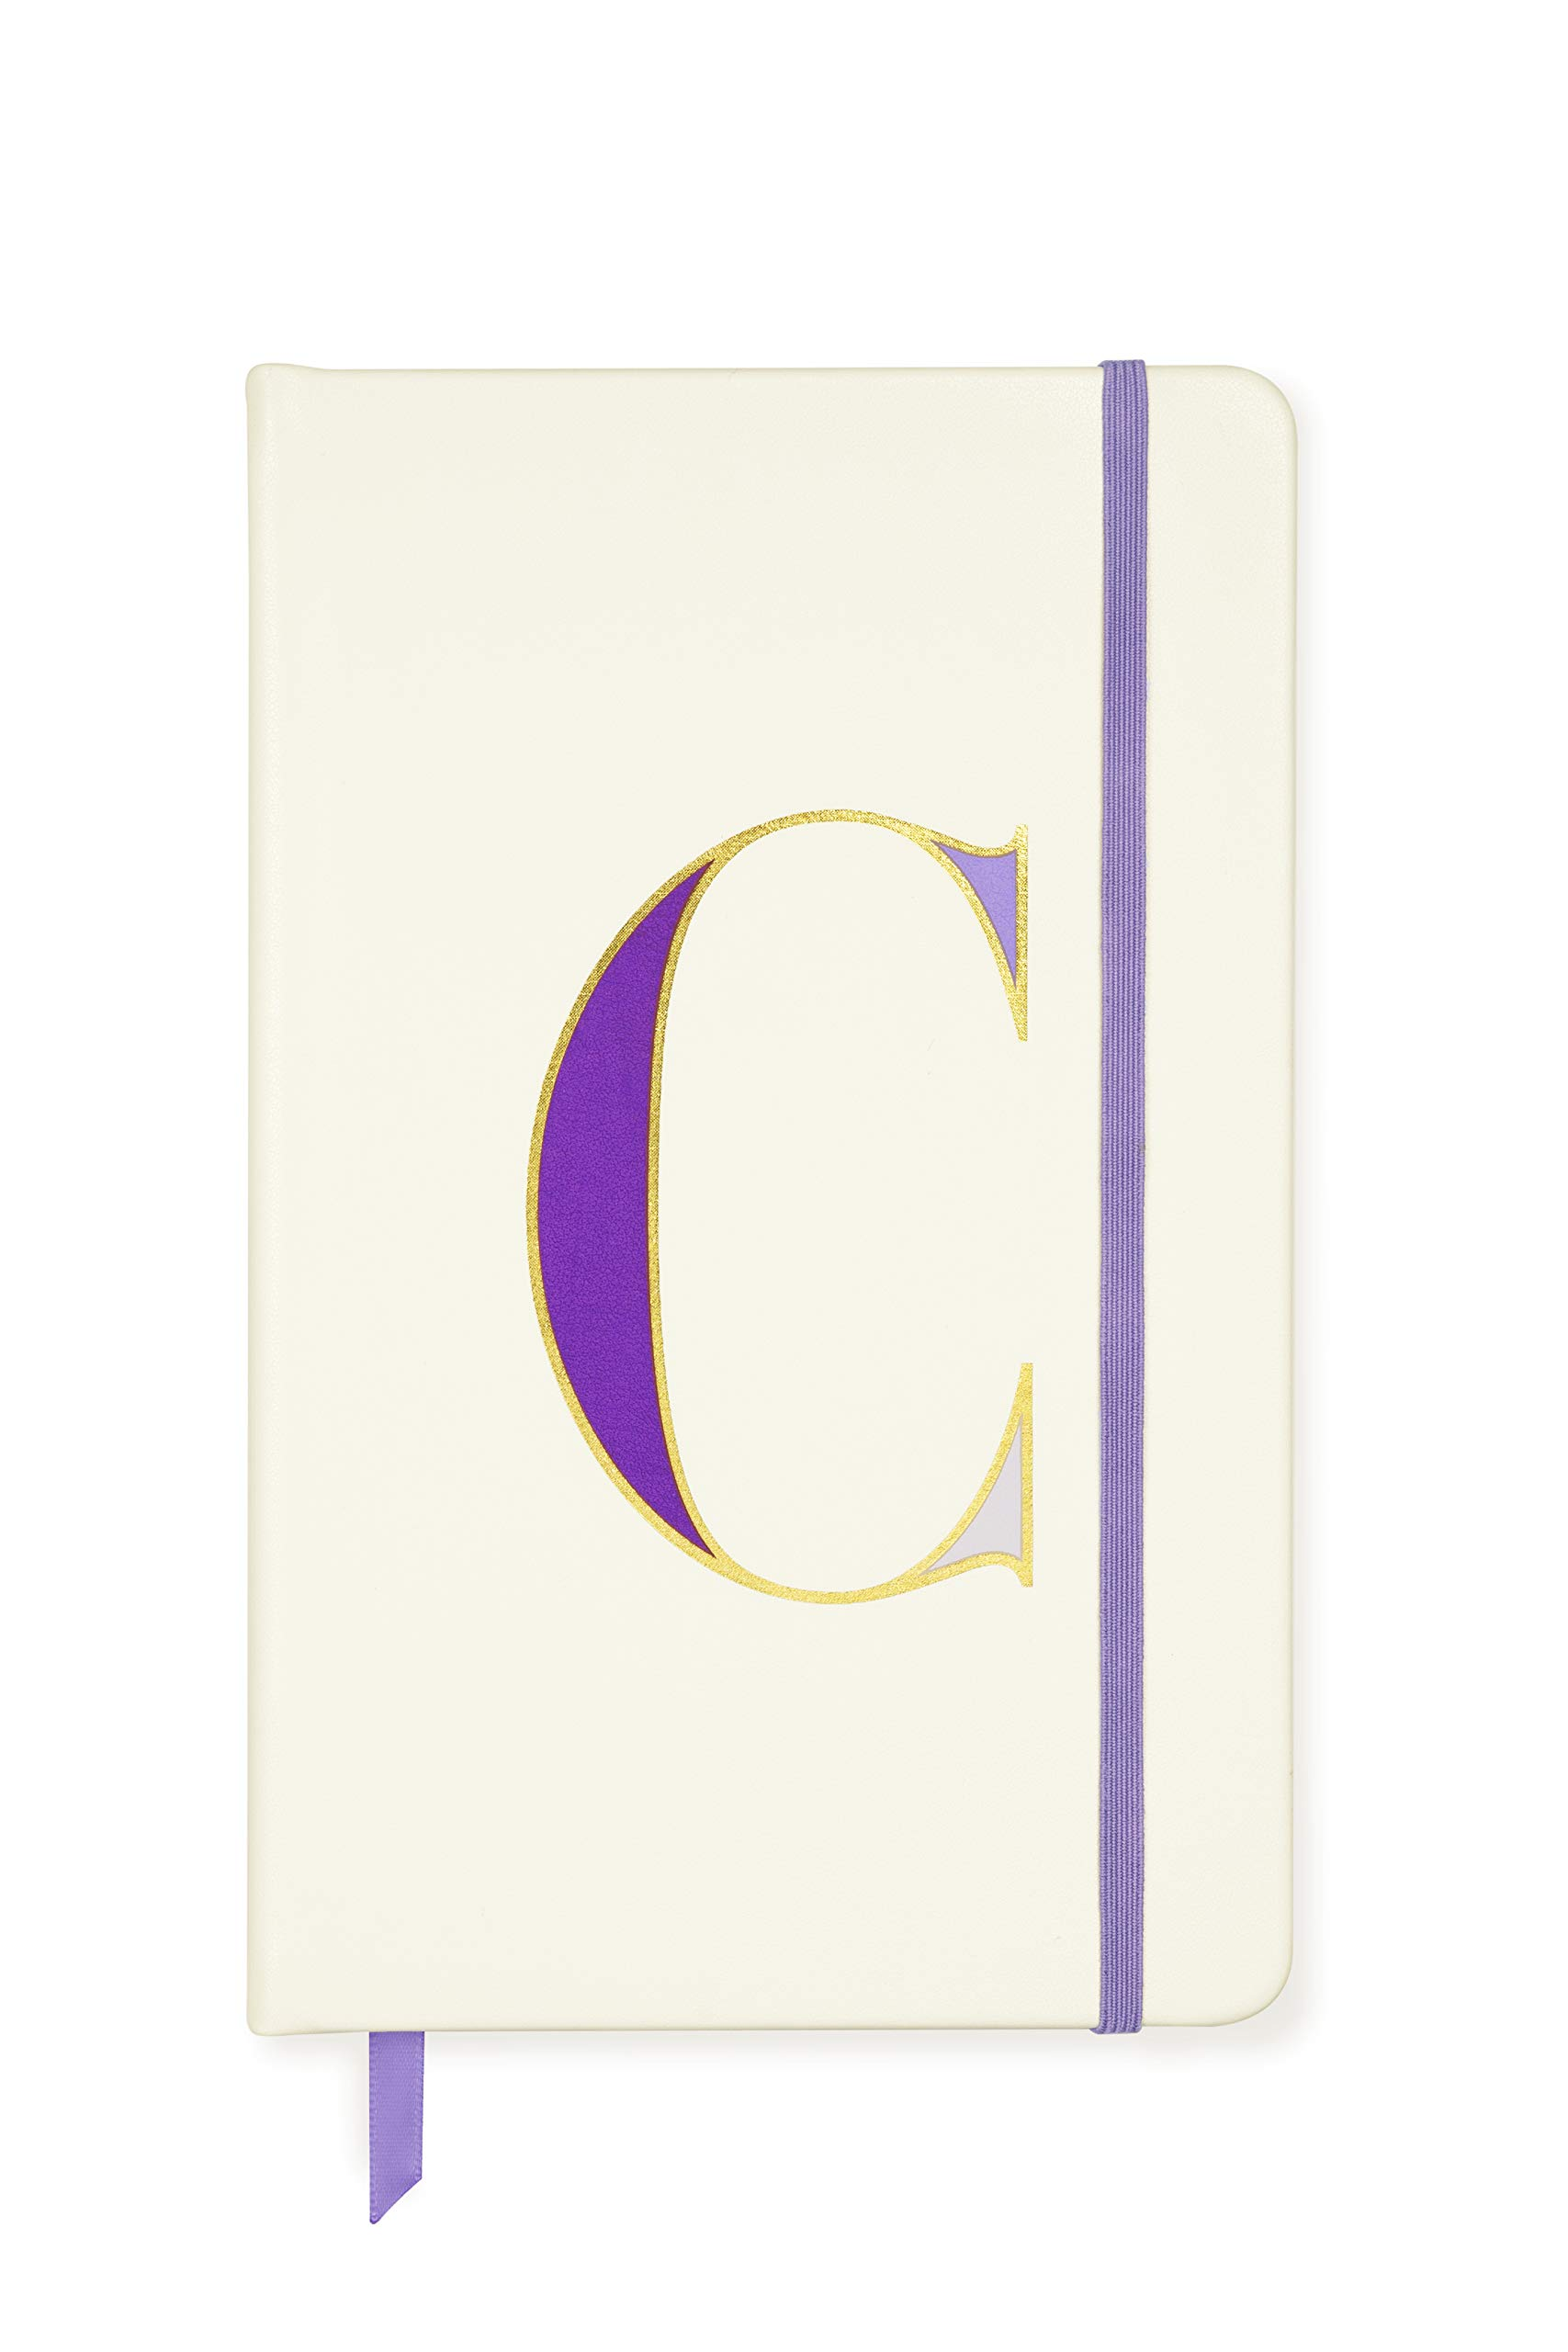 Kate Spade New York Take Note Large Leatherette Initial Notebook, 8.25'' x 5.25'' with 168 Pages, C (Purple)